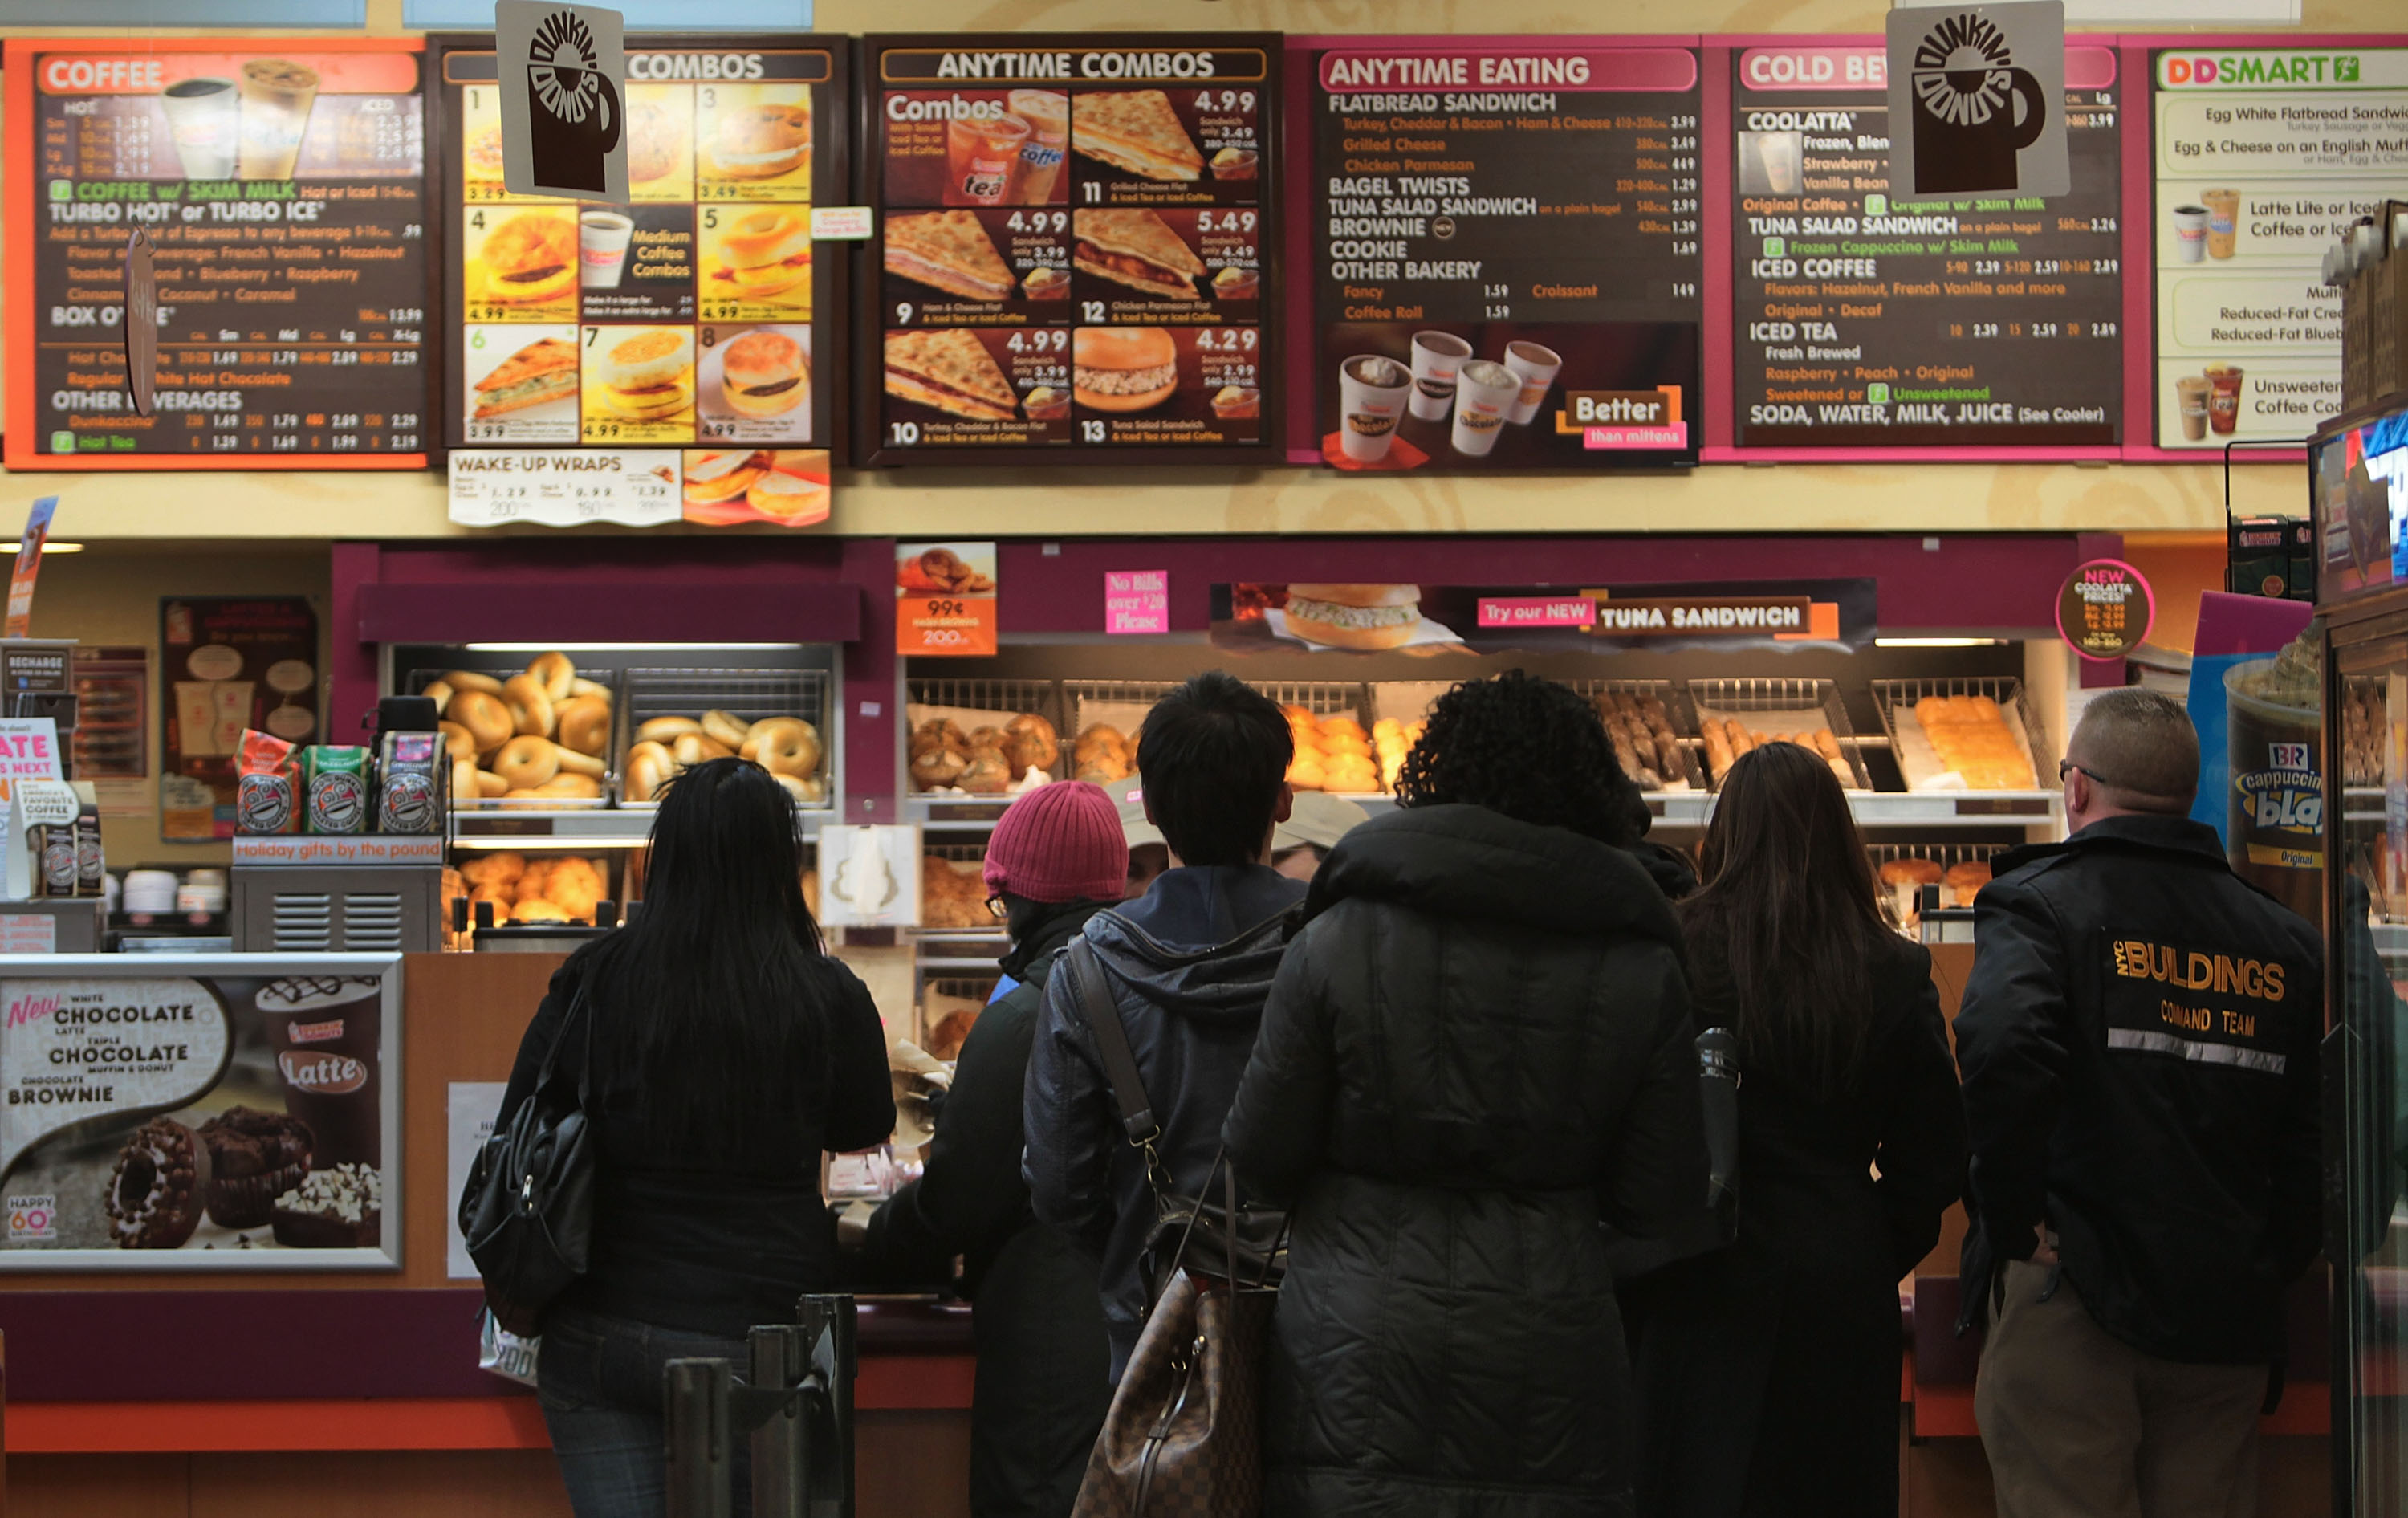 Chains Are Expanding at the Expense of Independent Restaurants